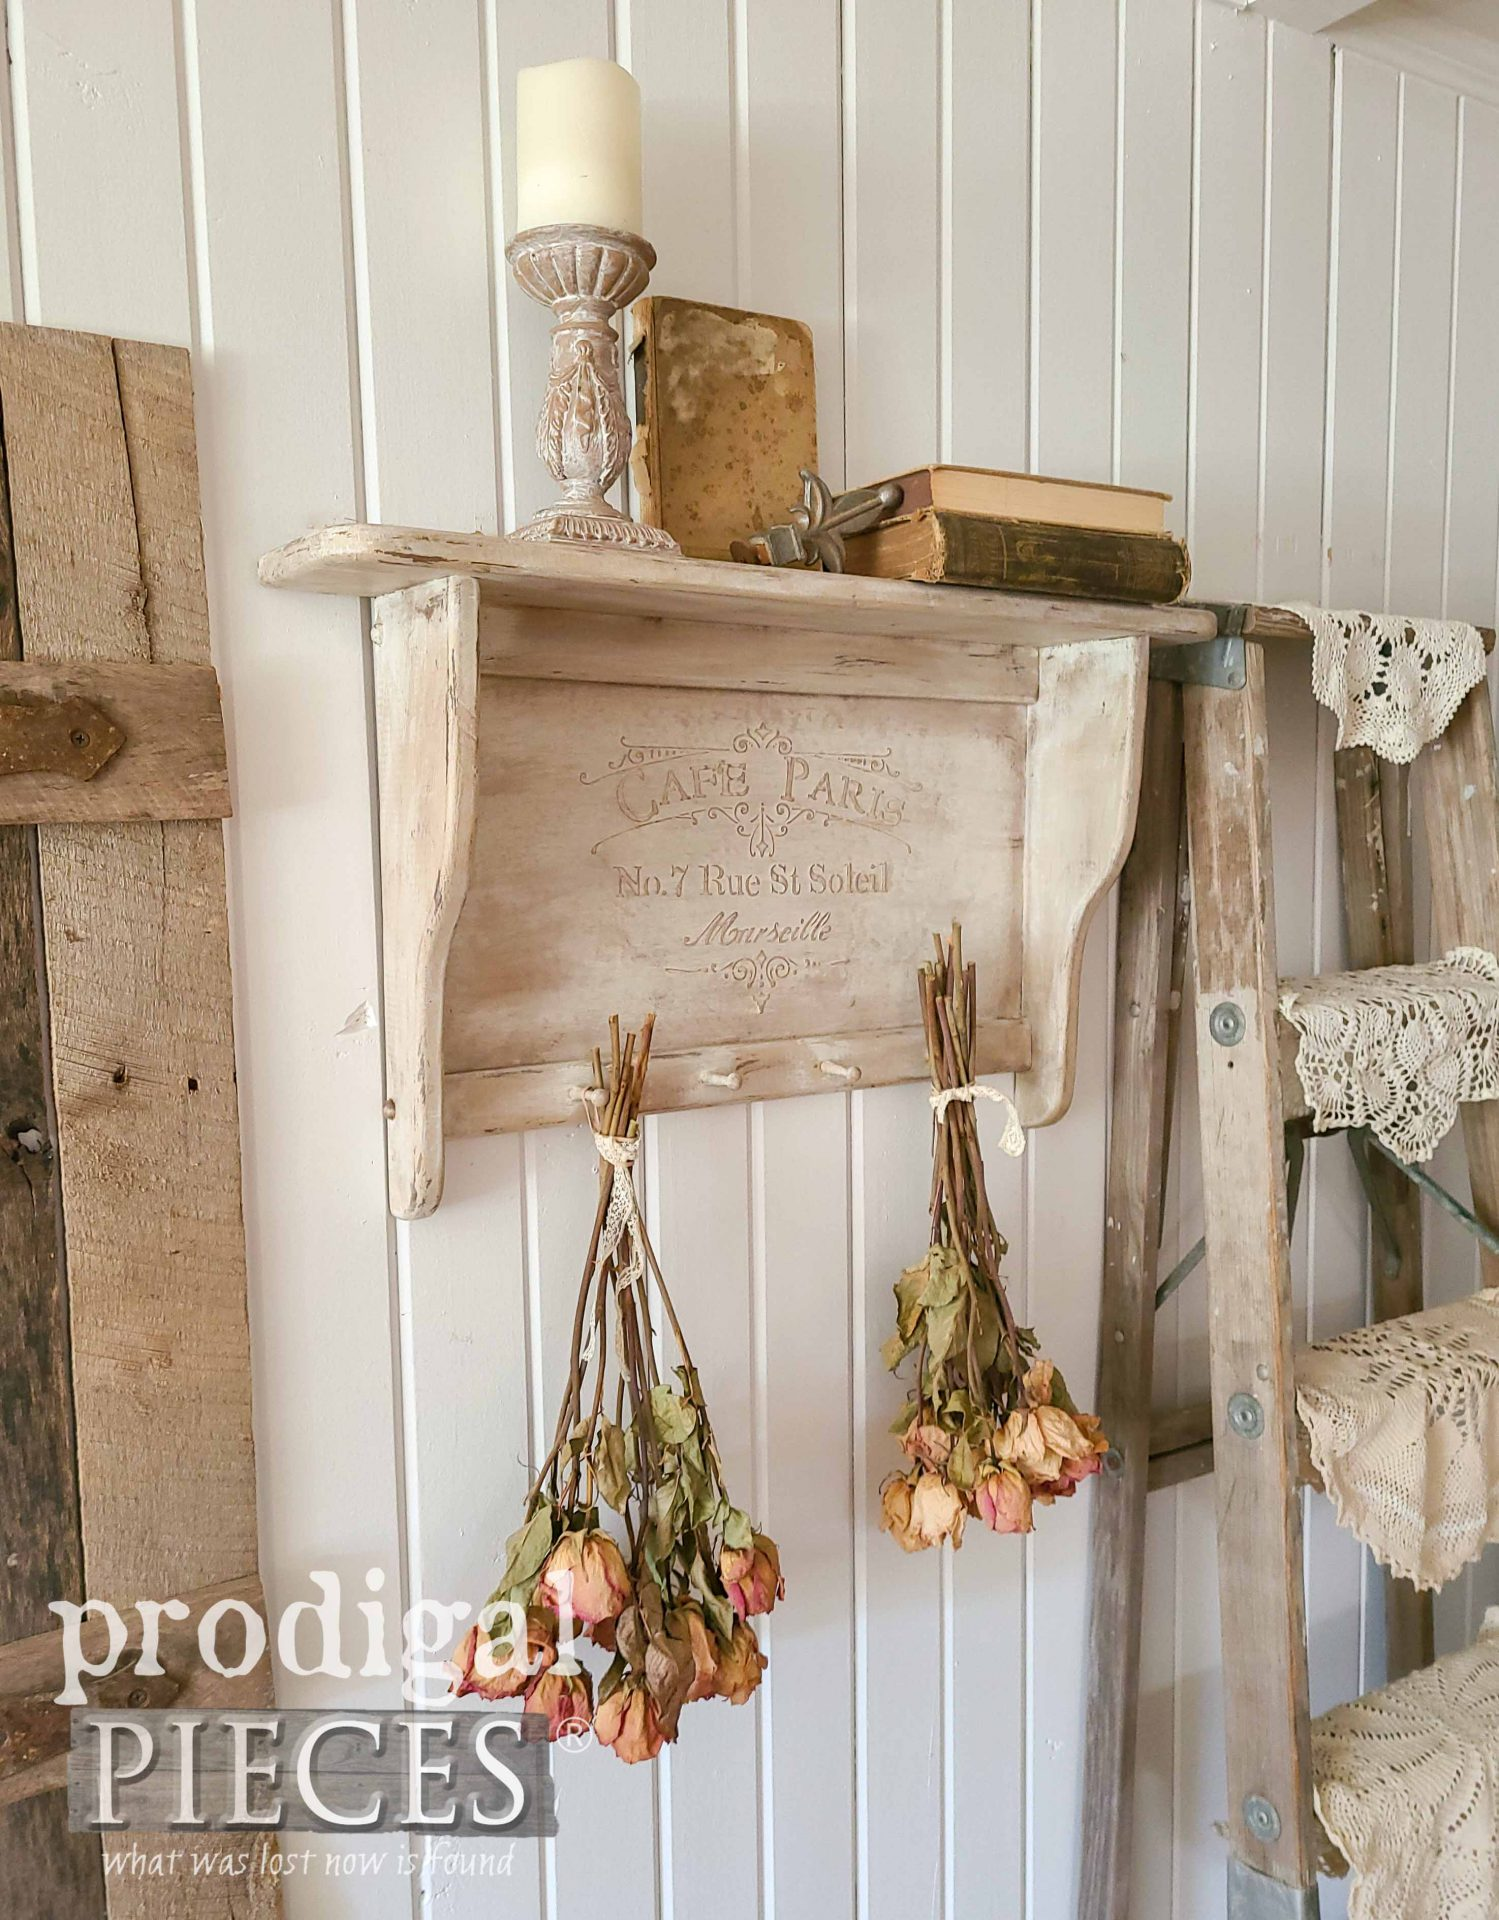 DIY Vintage Shelf Update with Embossing Using a Stencil by Larissa of Prodigal Pieces | Video tutorial at prodigalpieces.com #prodigalpieces #diy #home #homedecor #vintage